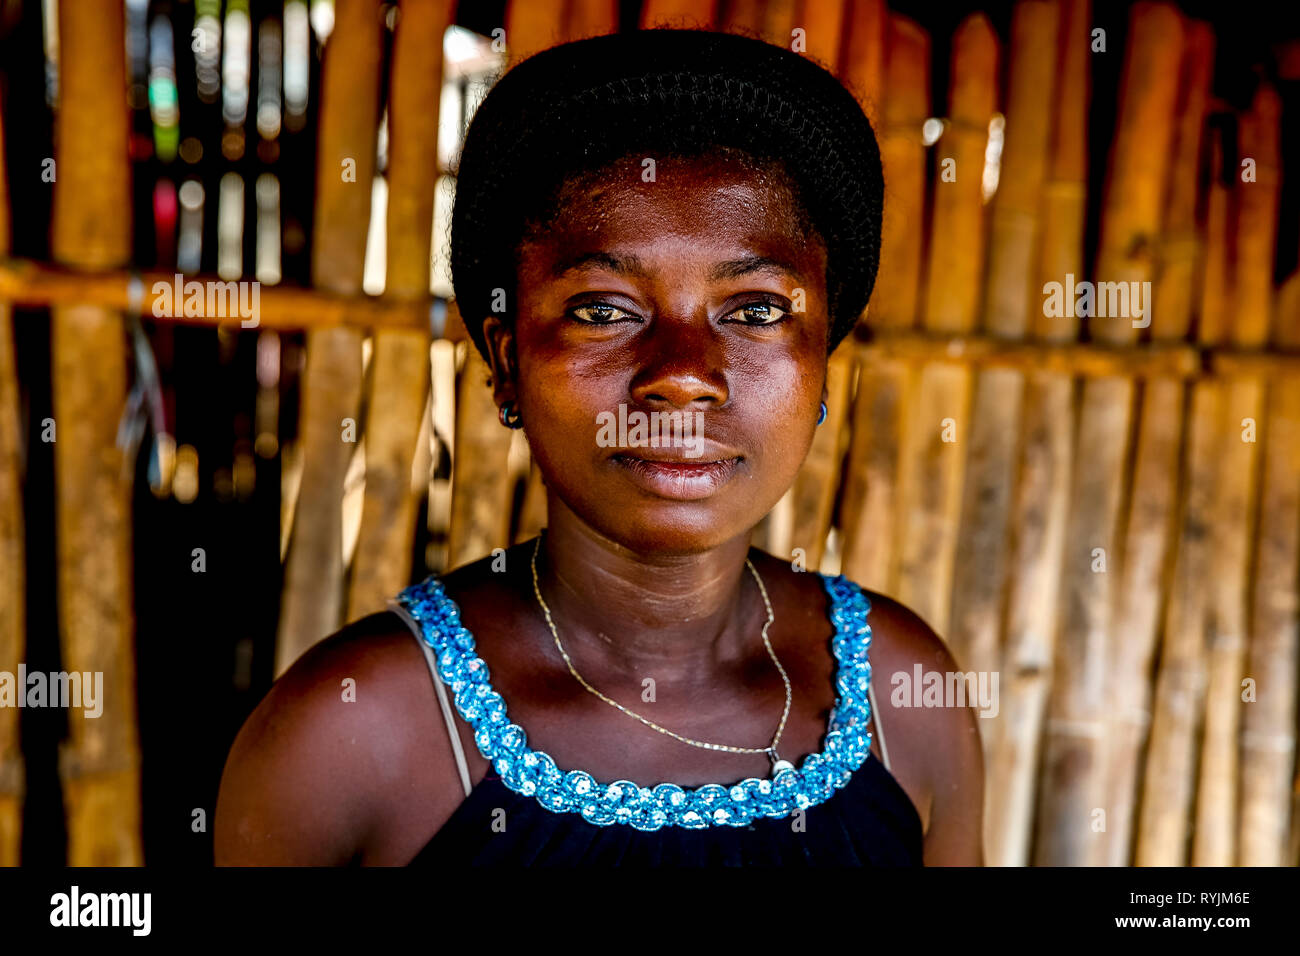 Villager near Agboville, Ivory Coast. - Stock Image